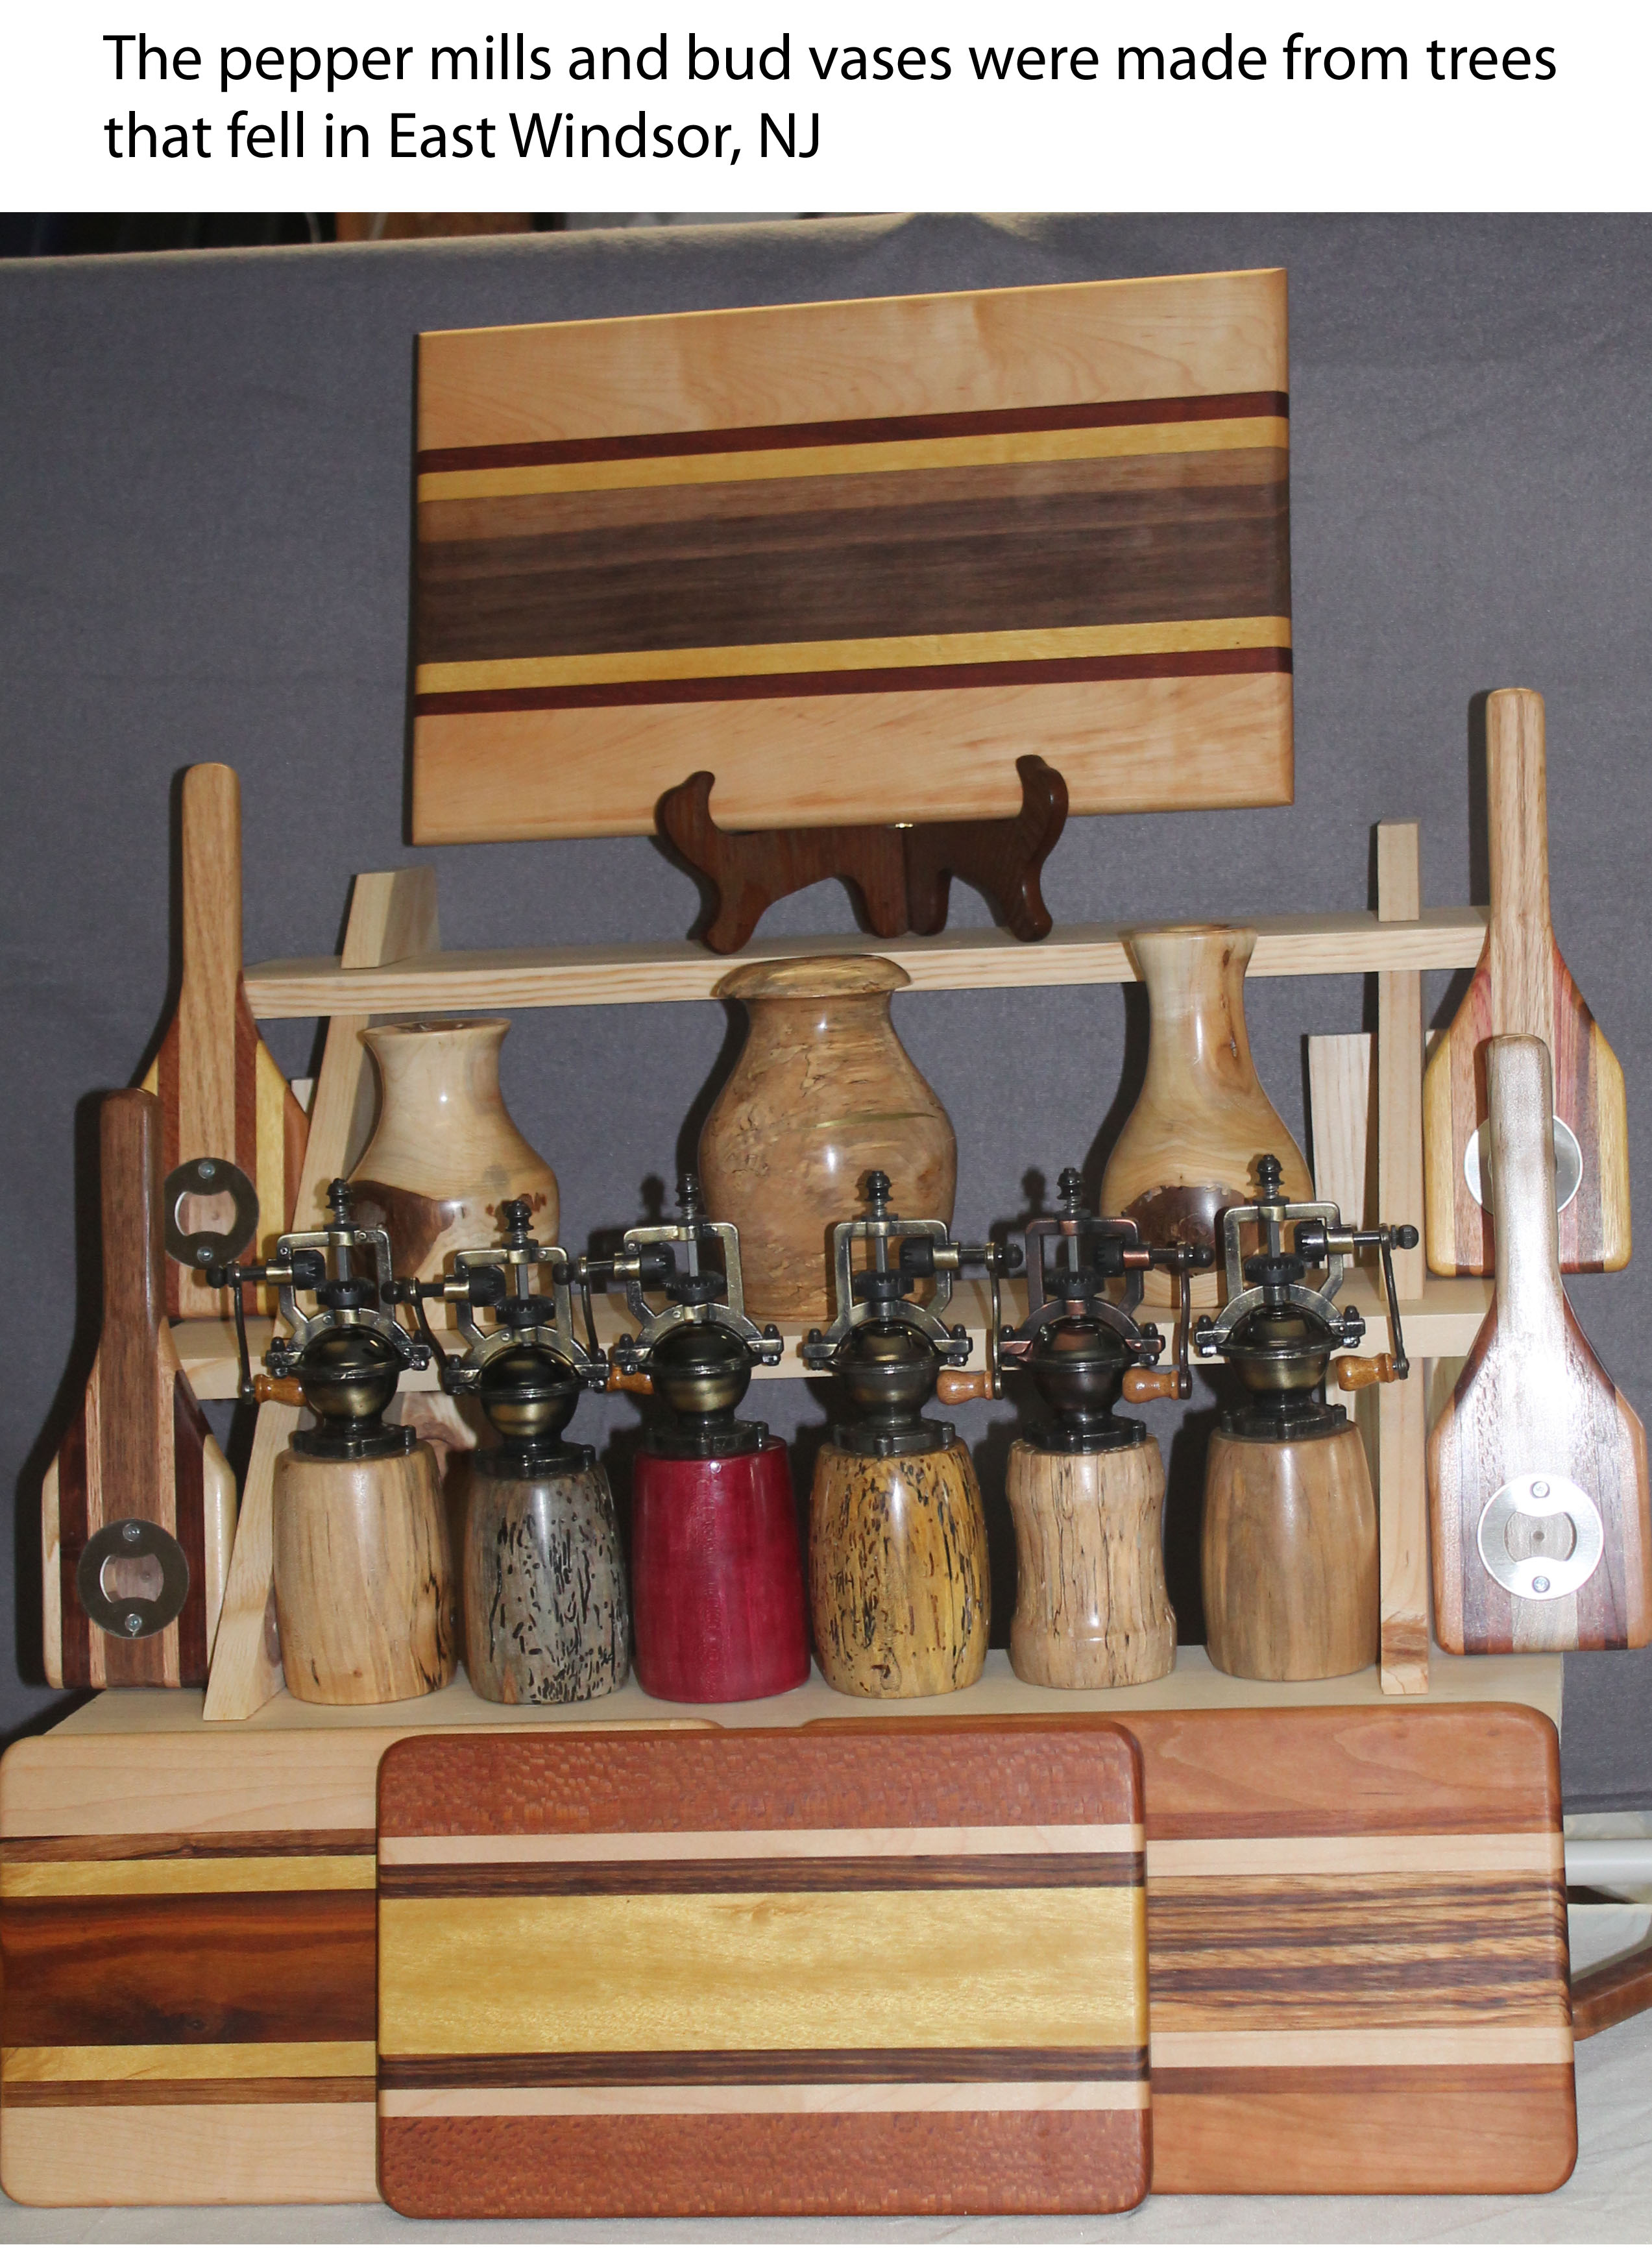 Cutting boards and pepper mills